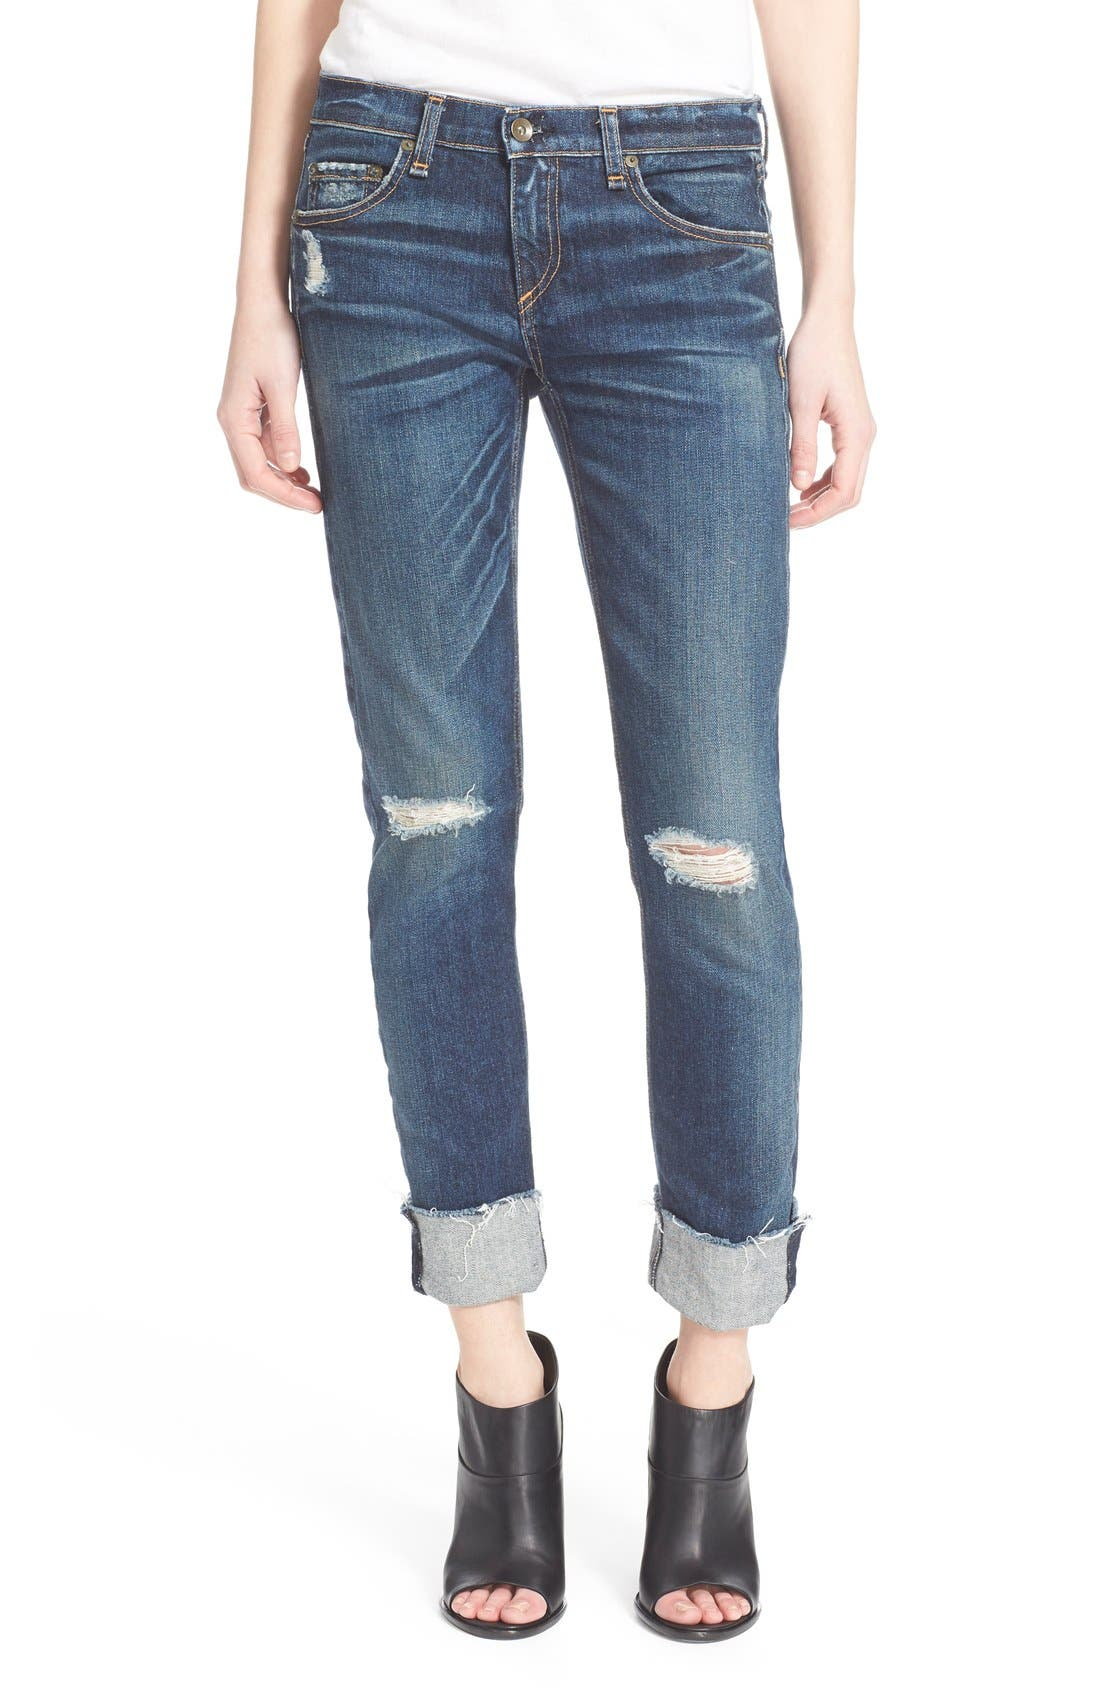 Alternate Image 1 Selected - rag & bone/JEAN 'The Dre' Slim Fit Boyfriend Jeans (Mabel)